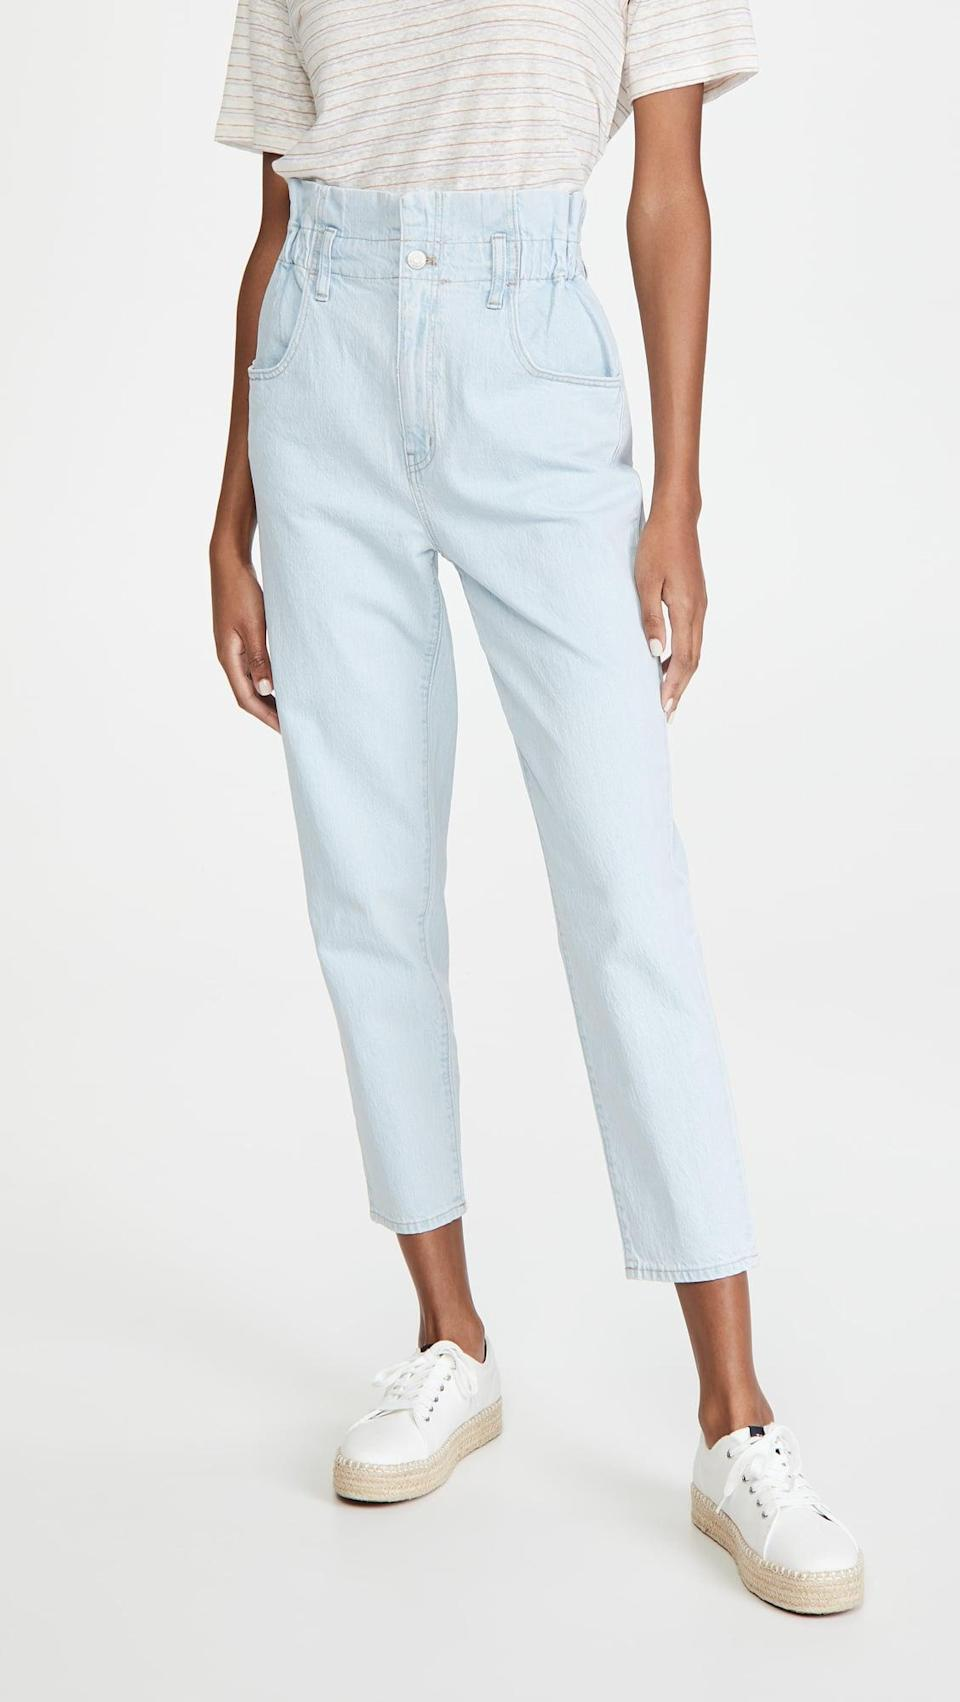 "<p>These fun <a href=""https://www.popsugar.com/buy/Madewell-Classic-Straight-Paperbag-Jeans-585703?p_name=Madewell%20Classic%20Straight%20Paperbag%20Jeans&retailer=shopbop.com&pid=585703&price=98&evar1=fab%3Aus&evar9=45615413&evar98=https%3A%2F%2Fwww.popsugar.com%2Ffashion%2Fphoto-gallery%2F45615413%2Fimage%2F47583285%2FMadewell-Classic-Straight-Paperbag-Jeans&list1=shopping%2Cdenim%2Cwinter%2Cwinter%20fashion&prop13=mobile&pdata=1"" class=""link rapid-noclick-resp"" rel=""nofollow noopener"" target=""_blank"" data-ylk=""slk:Madewell Classic Straight Paperbag Jeans"">Madewell Classic Straight Paperbag Jeans</a> ($98) would look great with a tee.</p>"